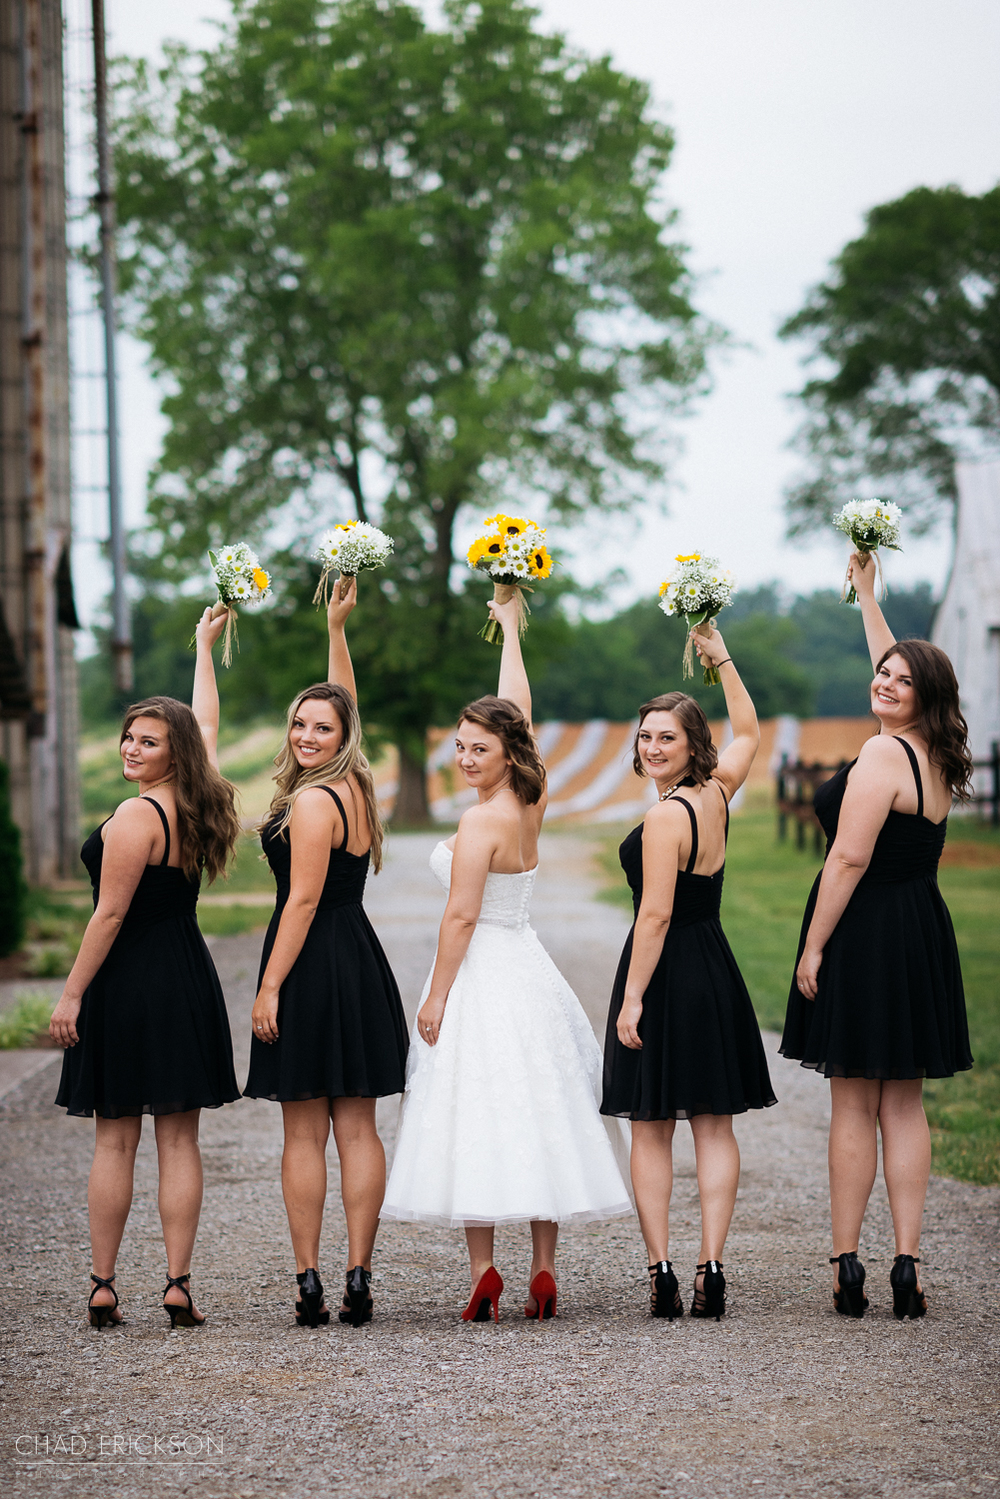 Cute bridesmaids portrait at The Grove of Williamson Place